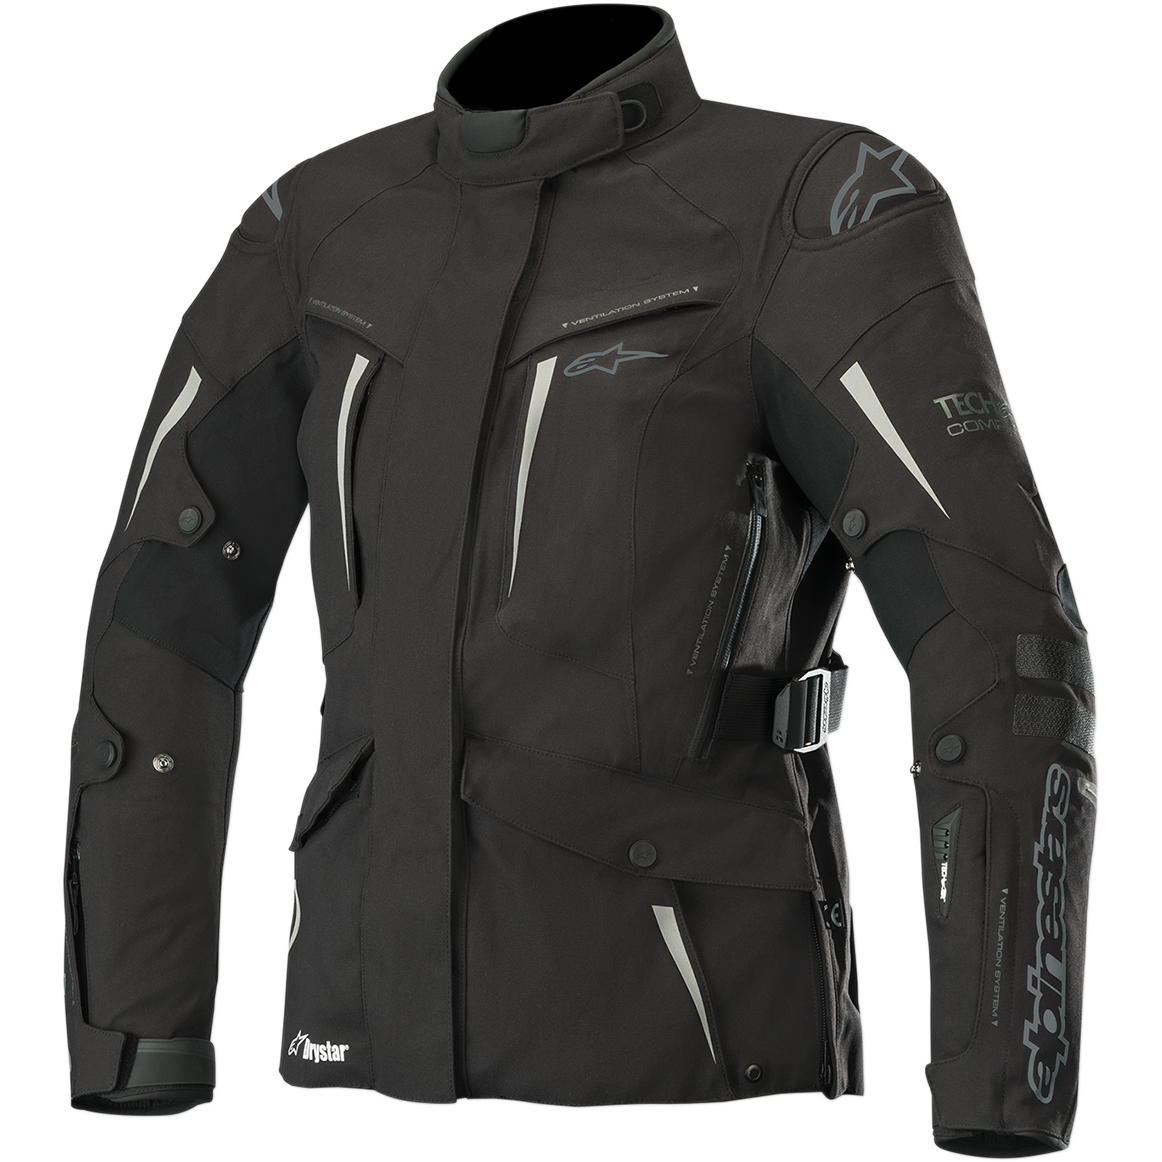 Stella Yaguara Drystar<sup>&reg;</sup> Jacket Tech-Air<sup>&reg;</sup> Compatible